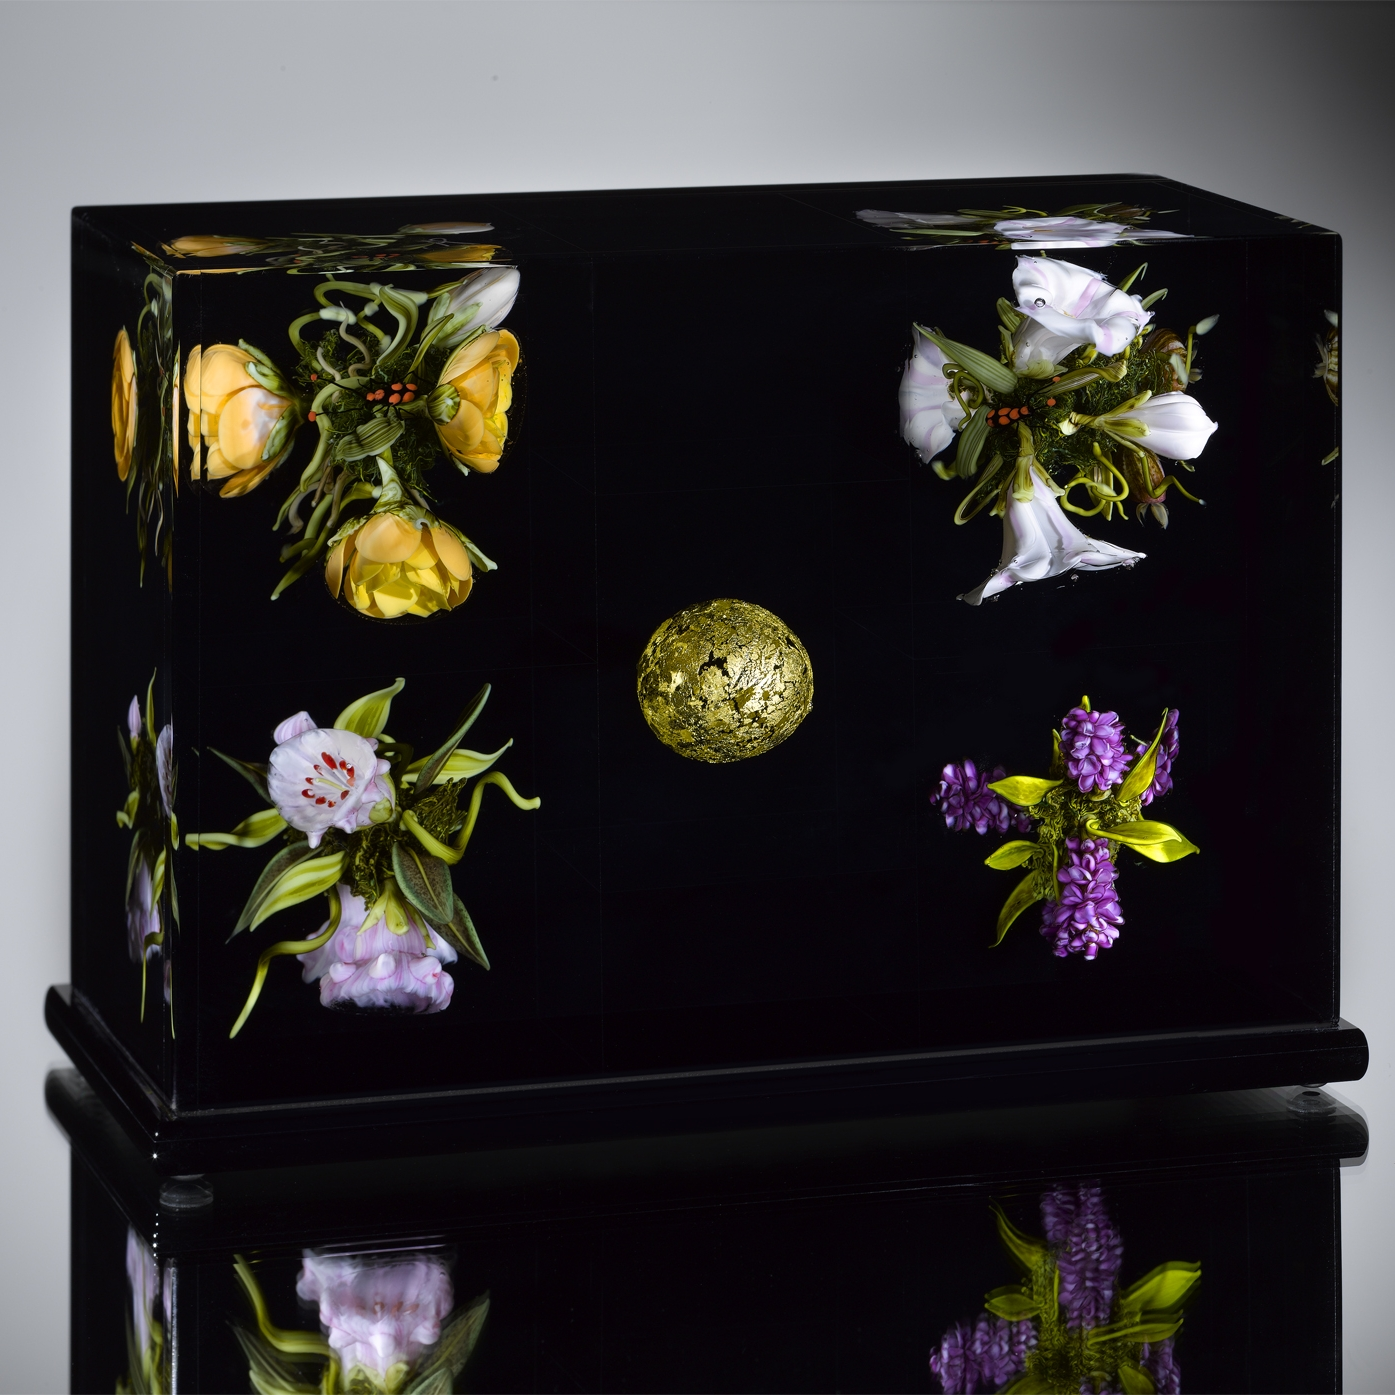 2009; Golden Orb Floral Triptych - Minkoff Collection; H. 5.37 inches x W. 7.75 inches x D. 4.0 inches